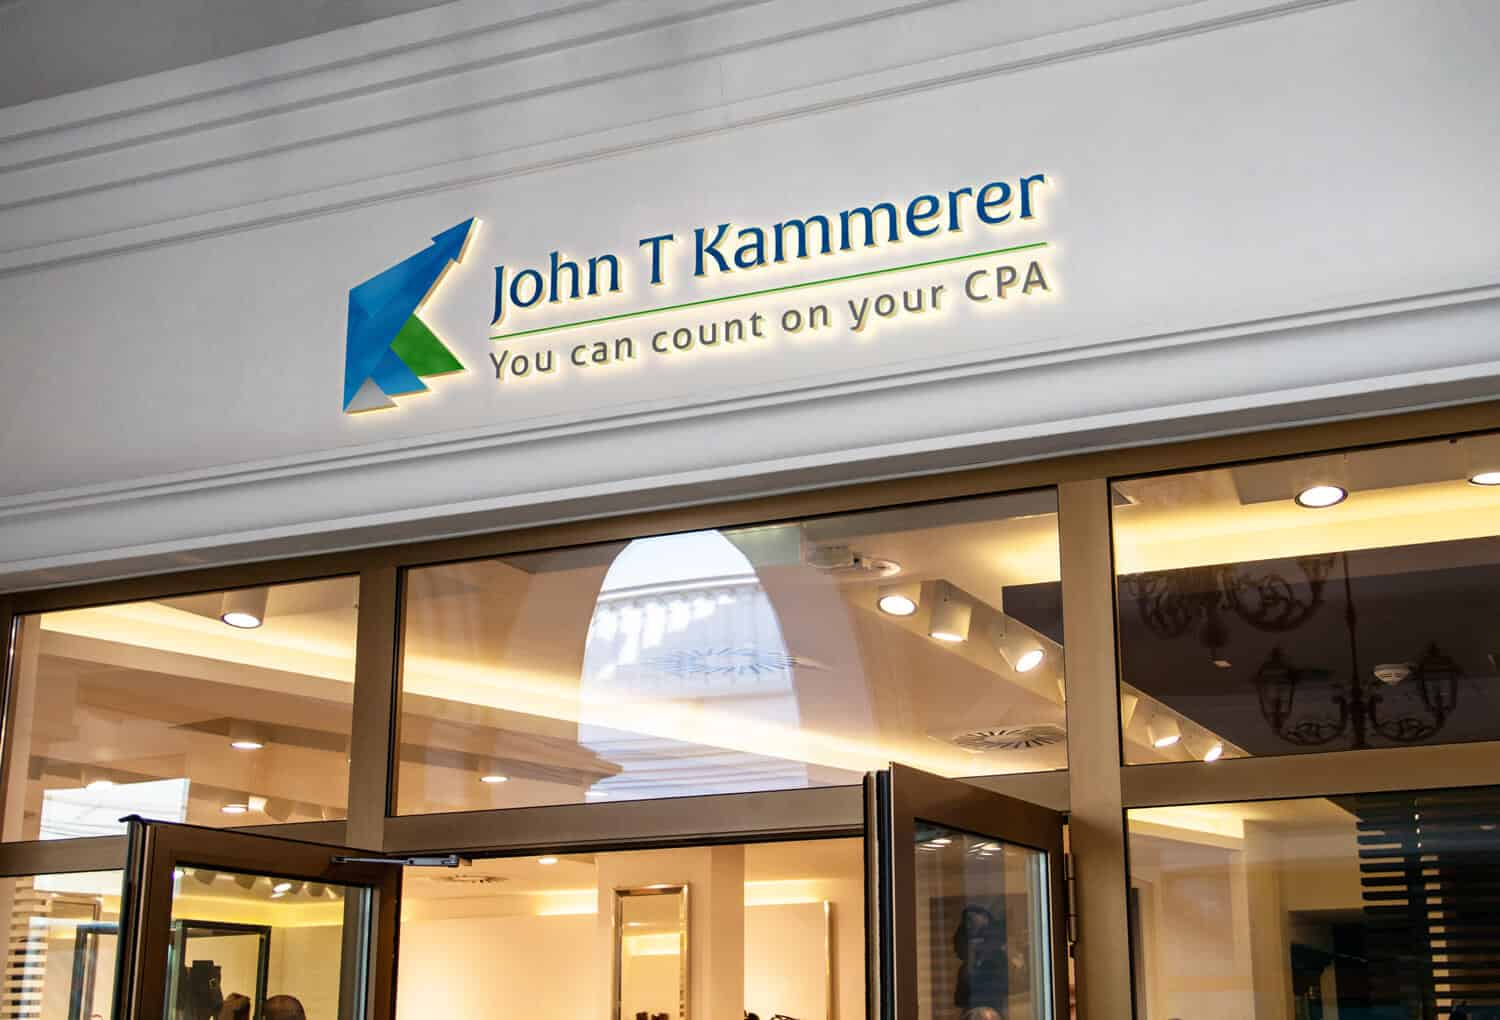 John_T_Kammerer_CPA_Accountant_Logo_Design_Sign_by_UziMedia_Graphic_and_Web_Design_Services_in_the_Berkeley_SF_CA_Bay_Area